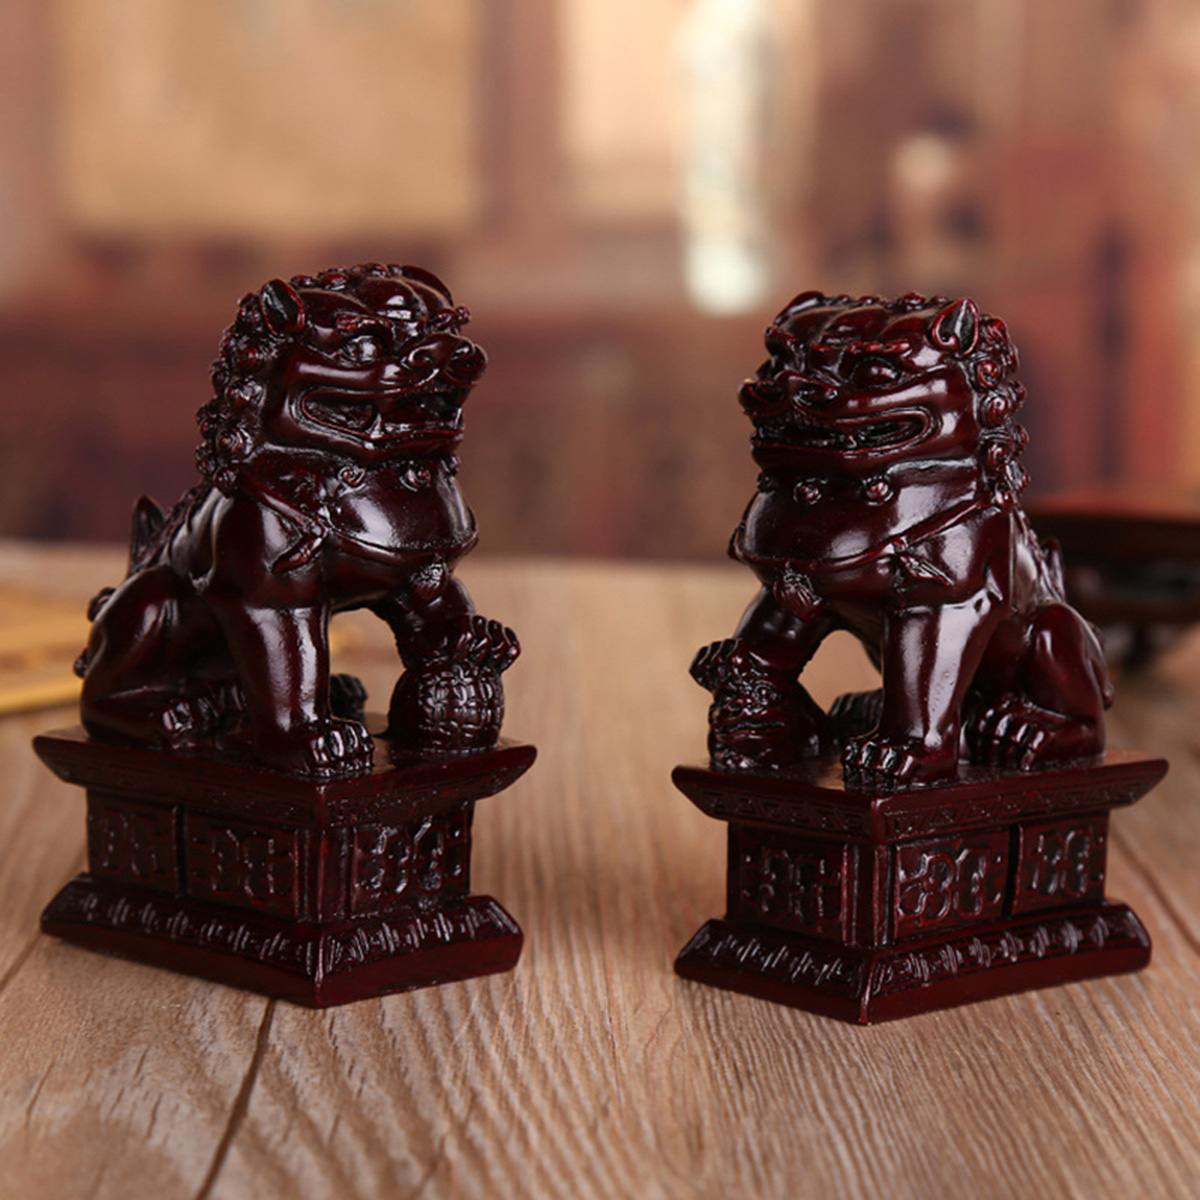 1 Pair Red Chinese Carving Fengshui Lions Resin Fu Foo Dog Guardion Door Lions Statue Beast Statue for Home Sculpture Decoration|Statues & Sculptures| |  - title=